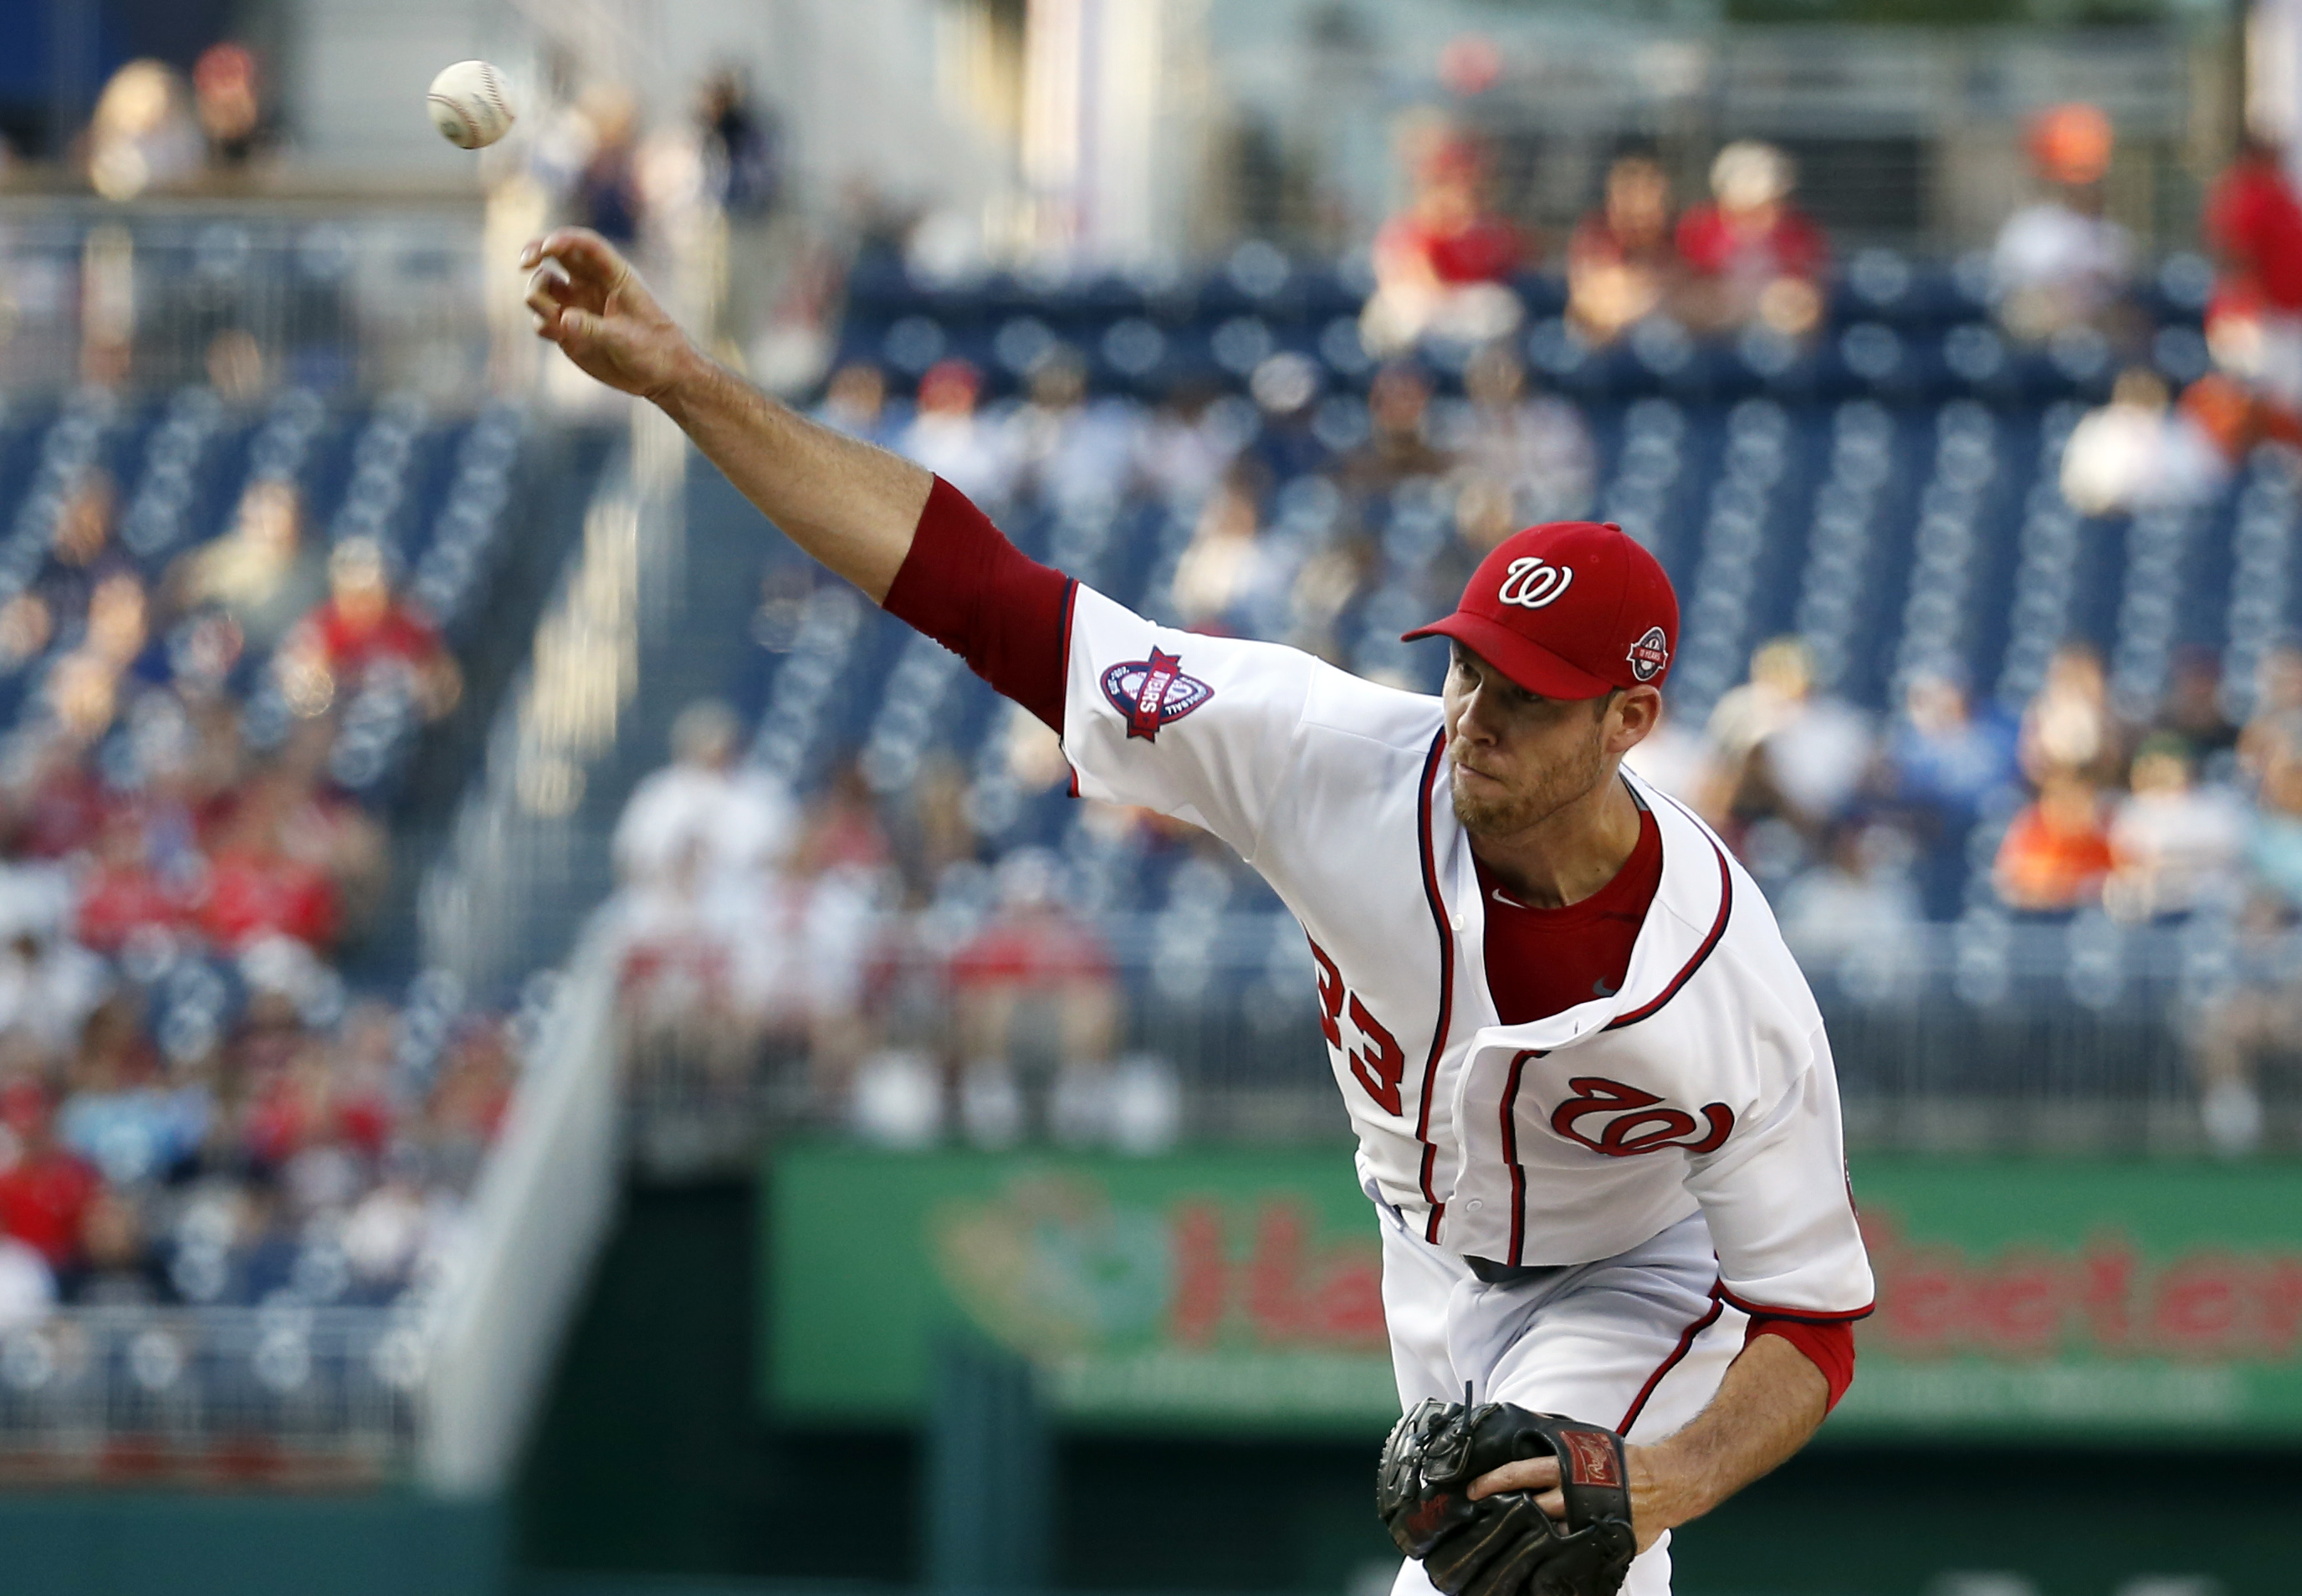 Washington Nationals starting pitcher Doug Fister throws during the first inning of a baseball game against the Arizona Diamondbacks at Nationals Park, Monday, Aug. 3, 2015, in Washington. (AP Photo/Alex Brandon)